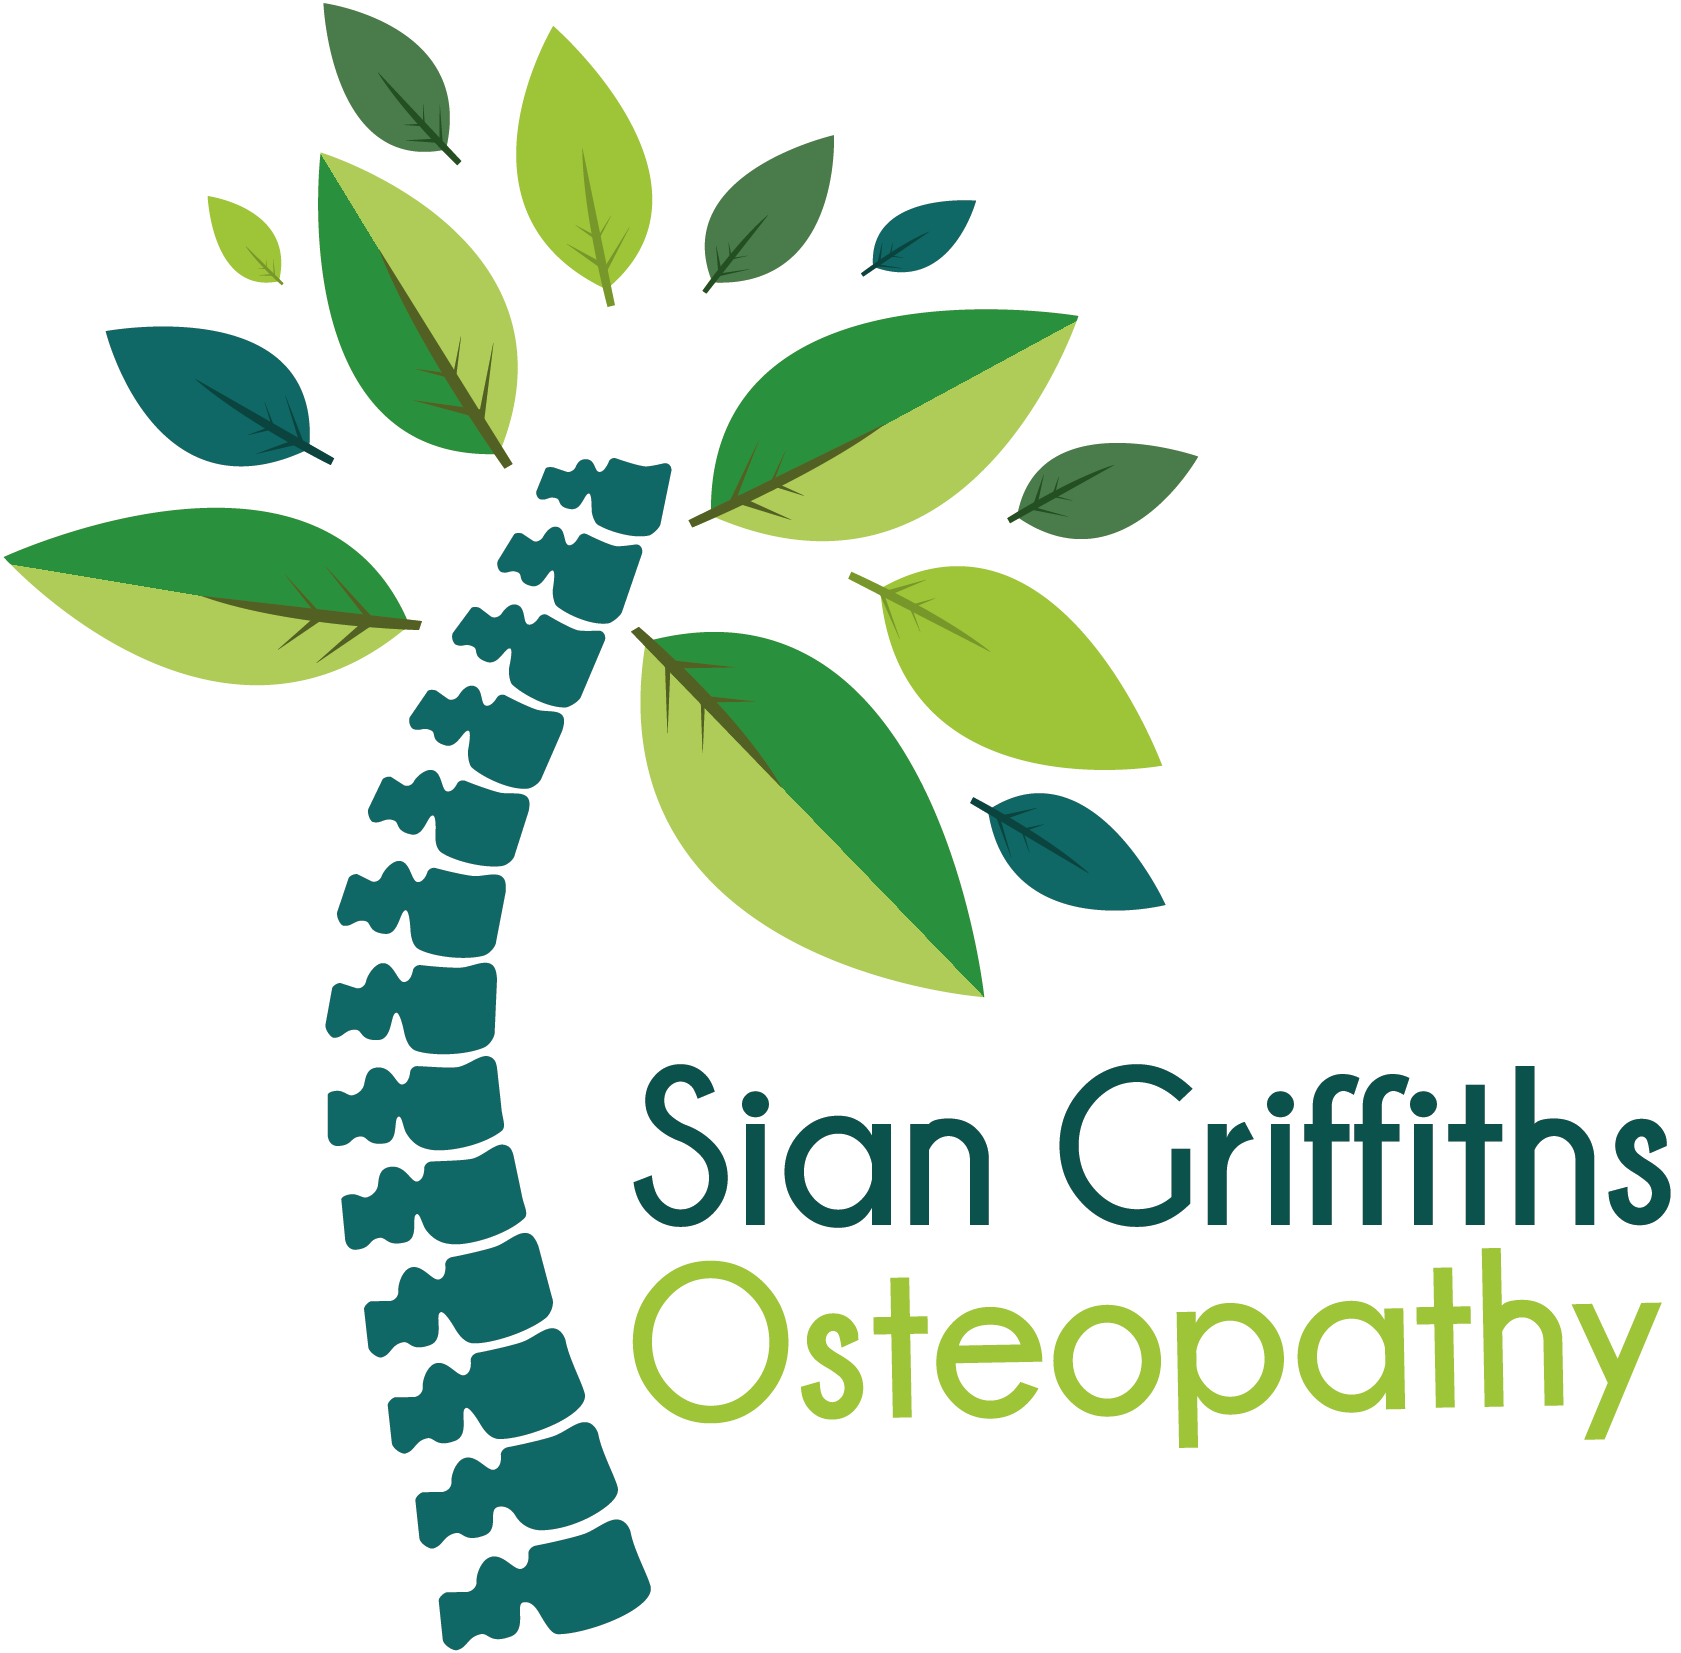 Logo of Sian Griffiths Osteopath Osteopaths In Llanelli, Dyfed